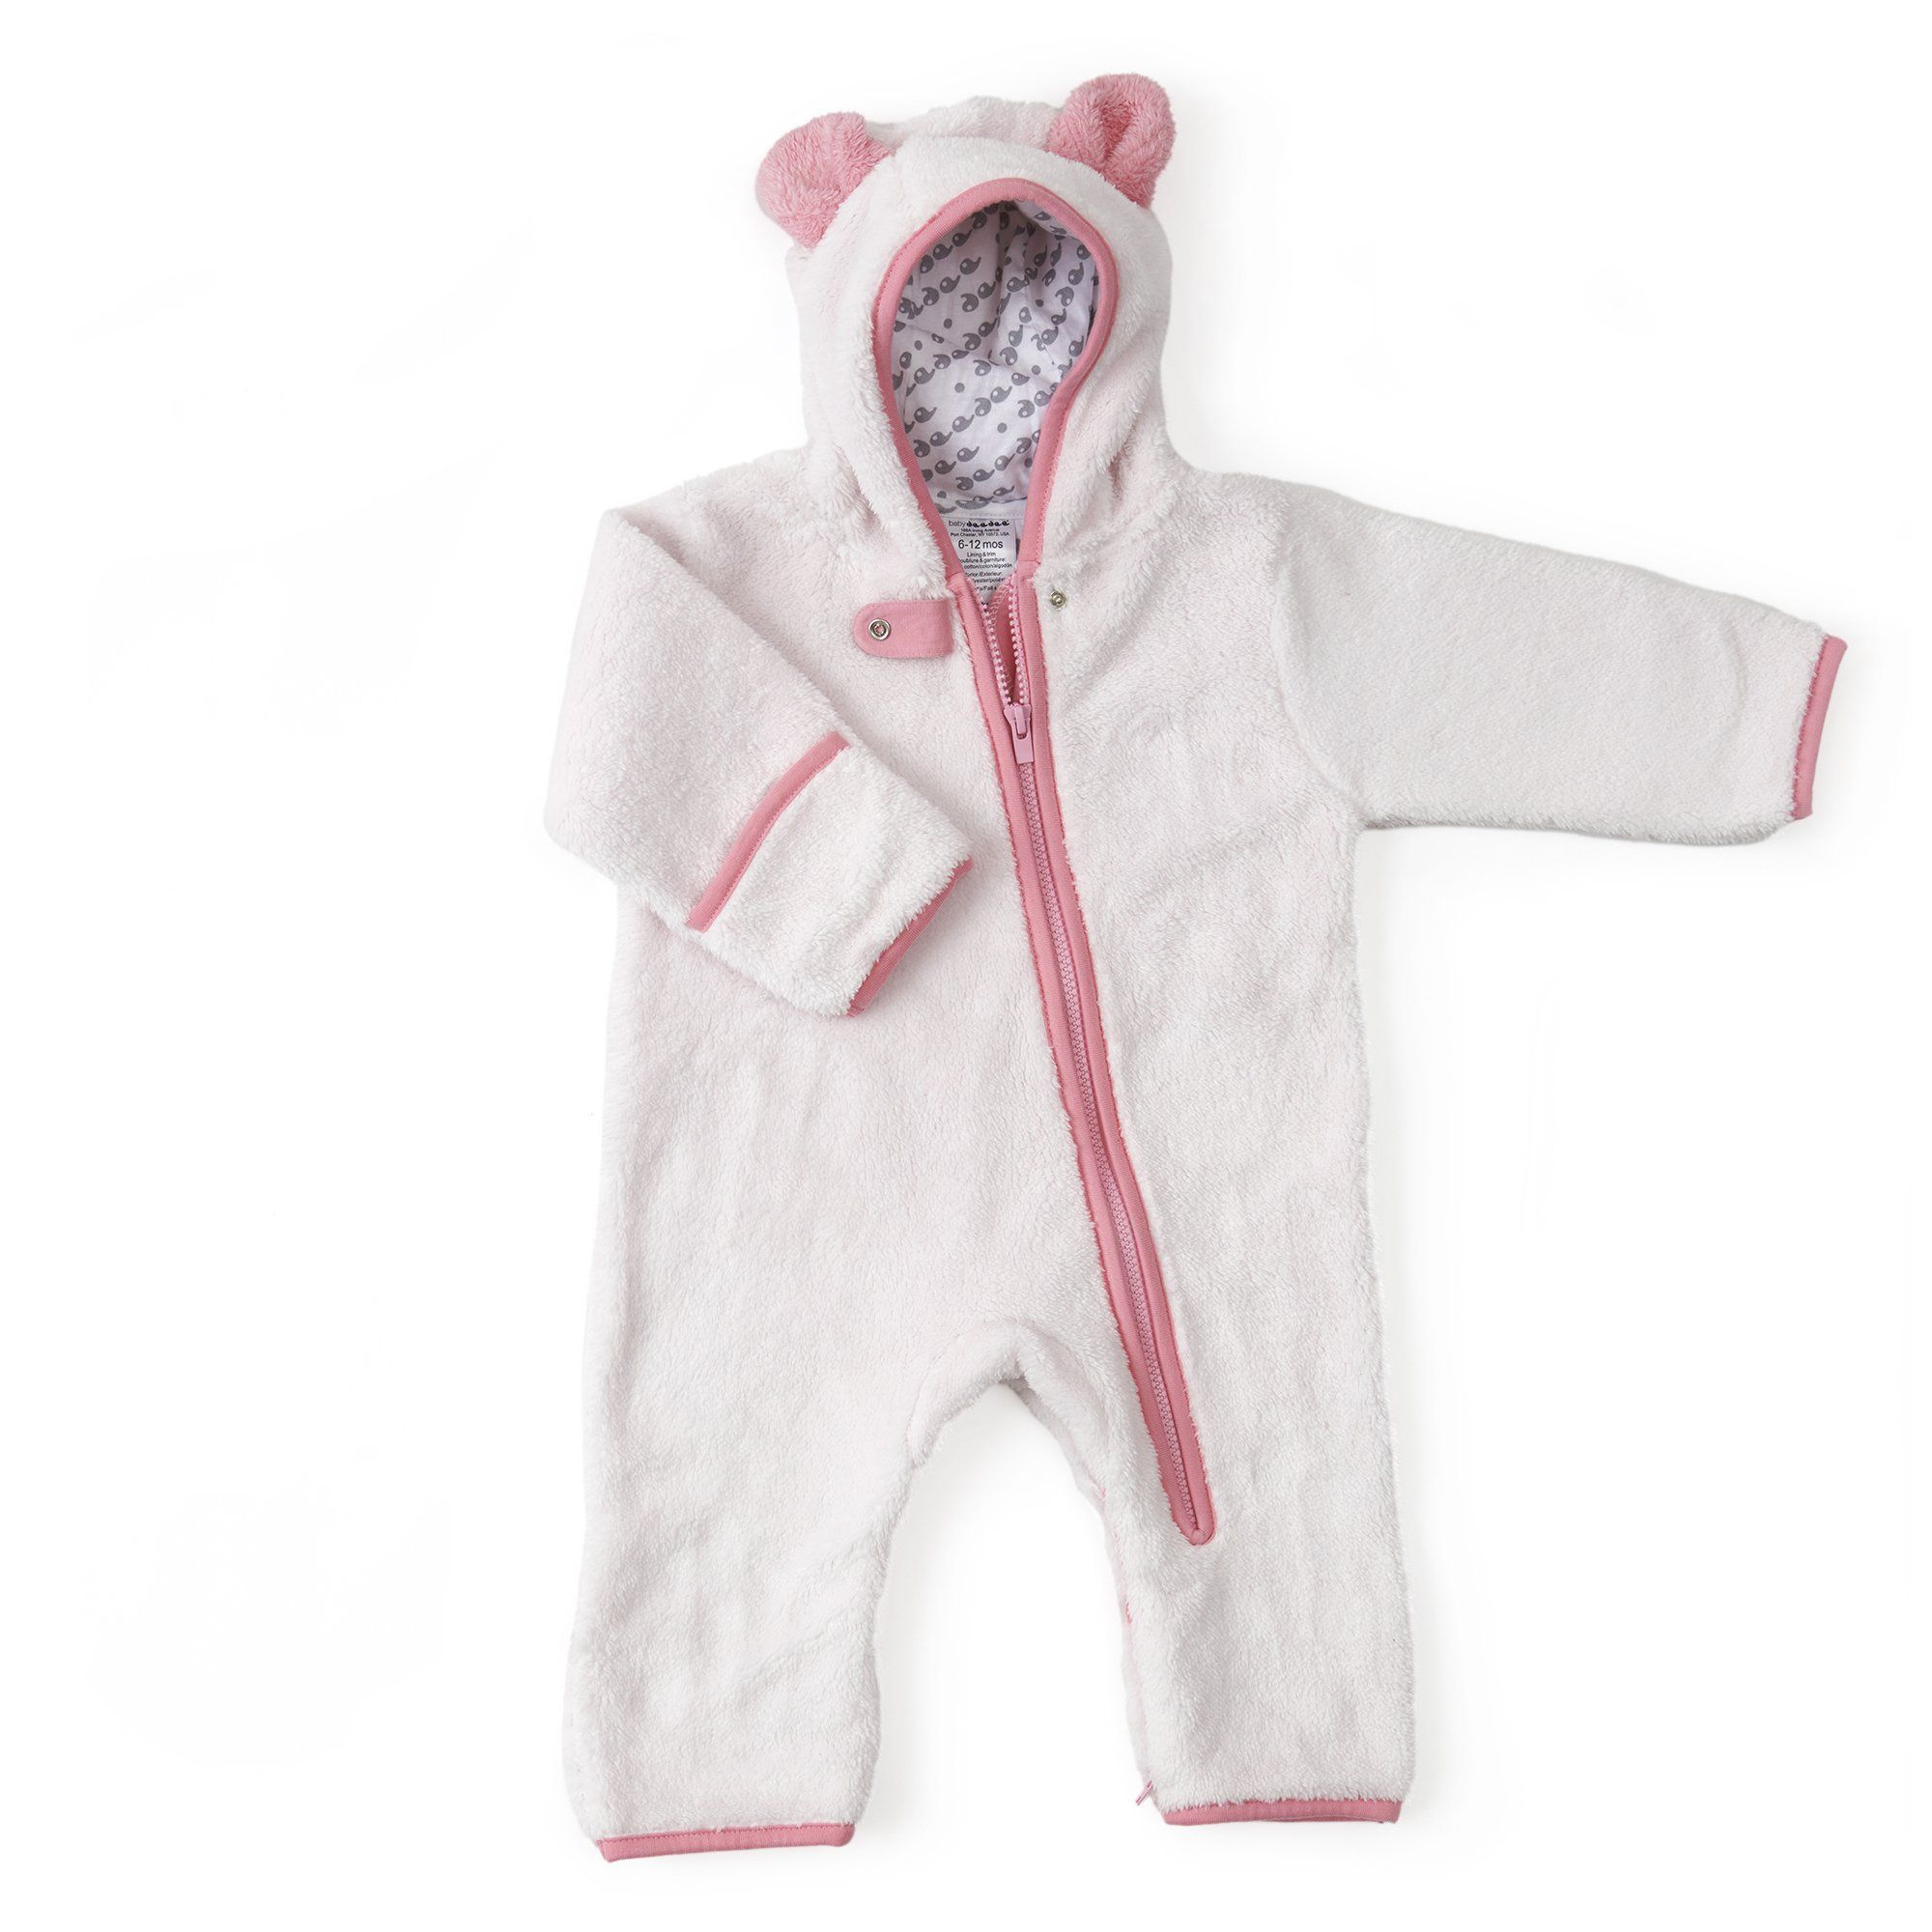 Furry bear buntings - 6-12 Months / Pink